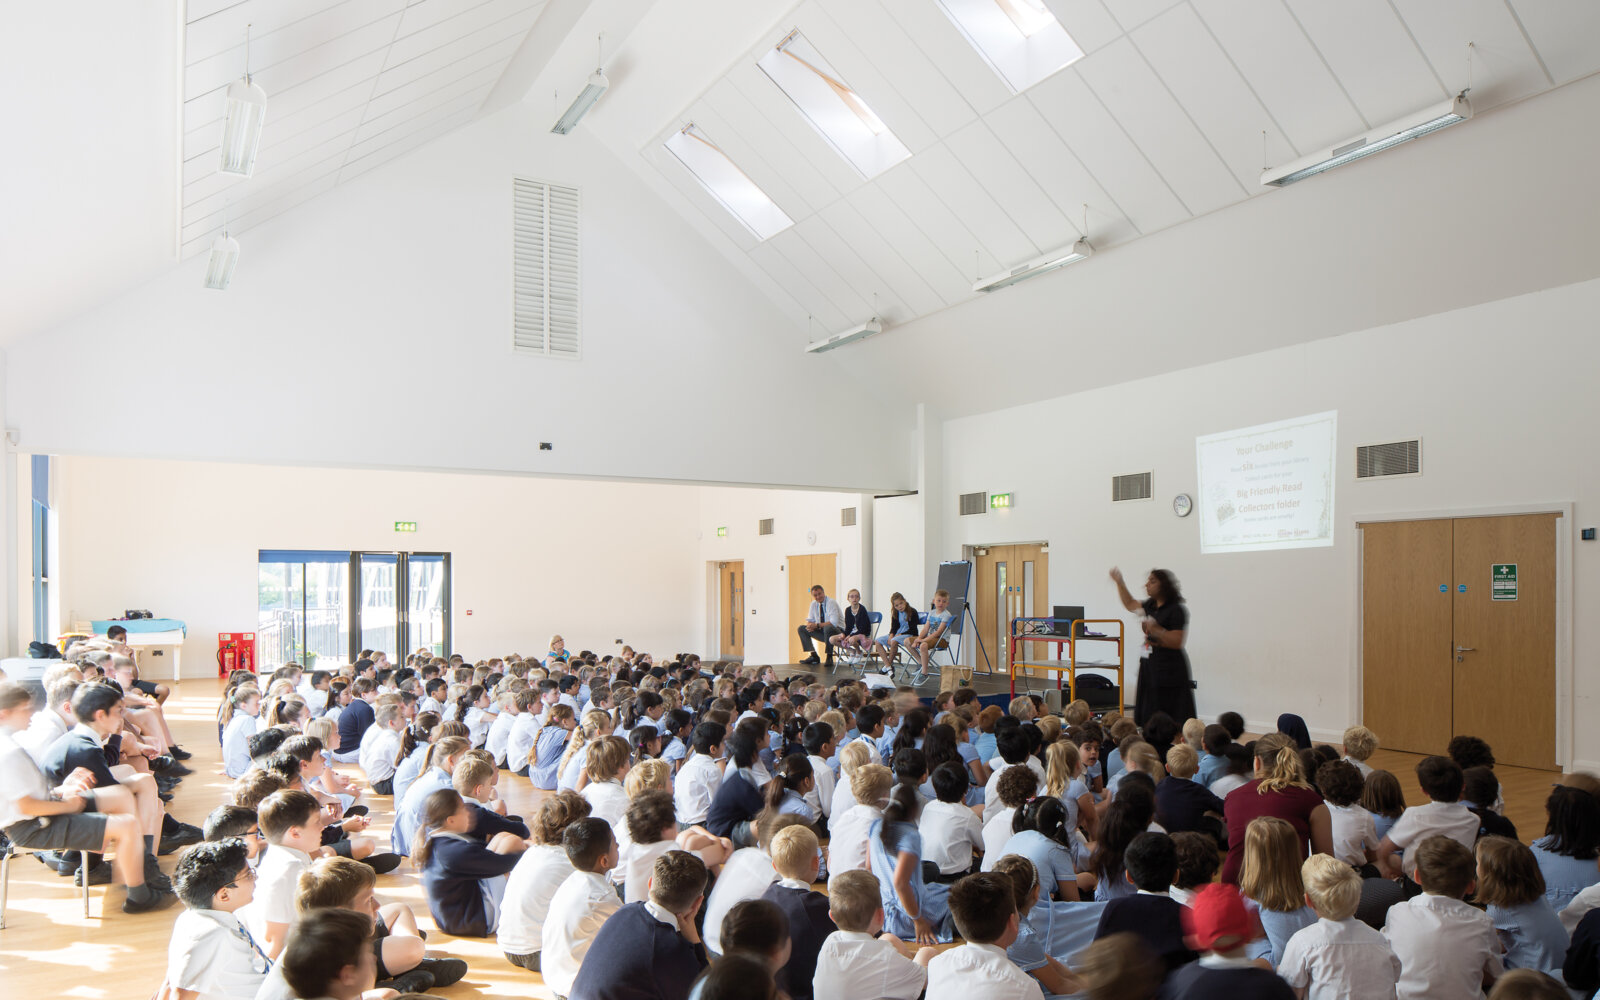 Oldfield Primary School assembly hall